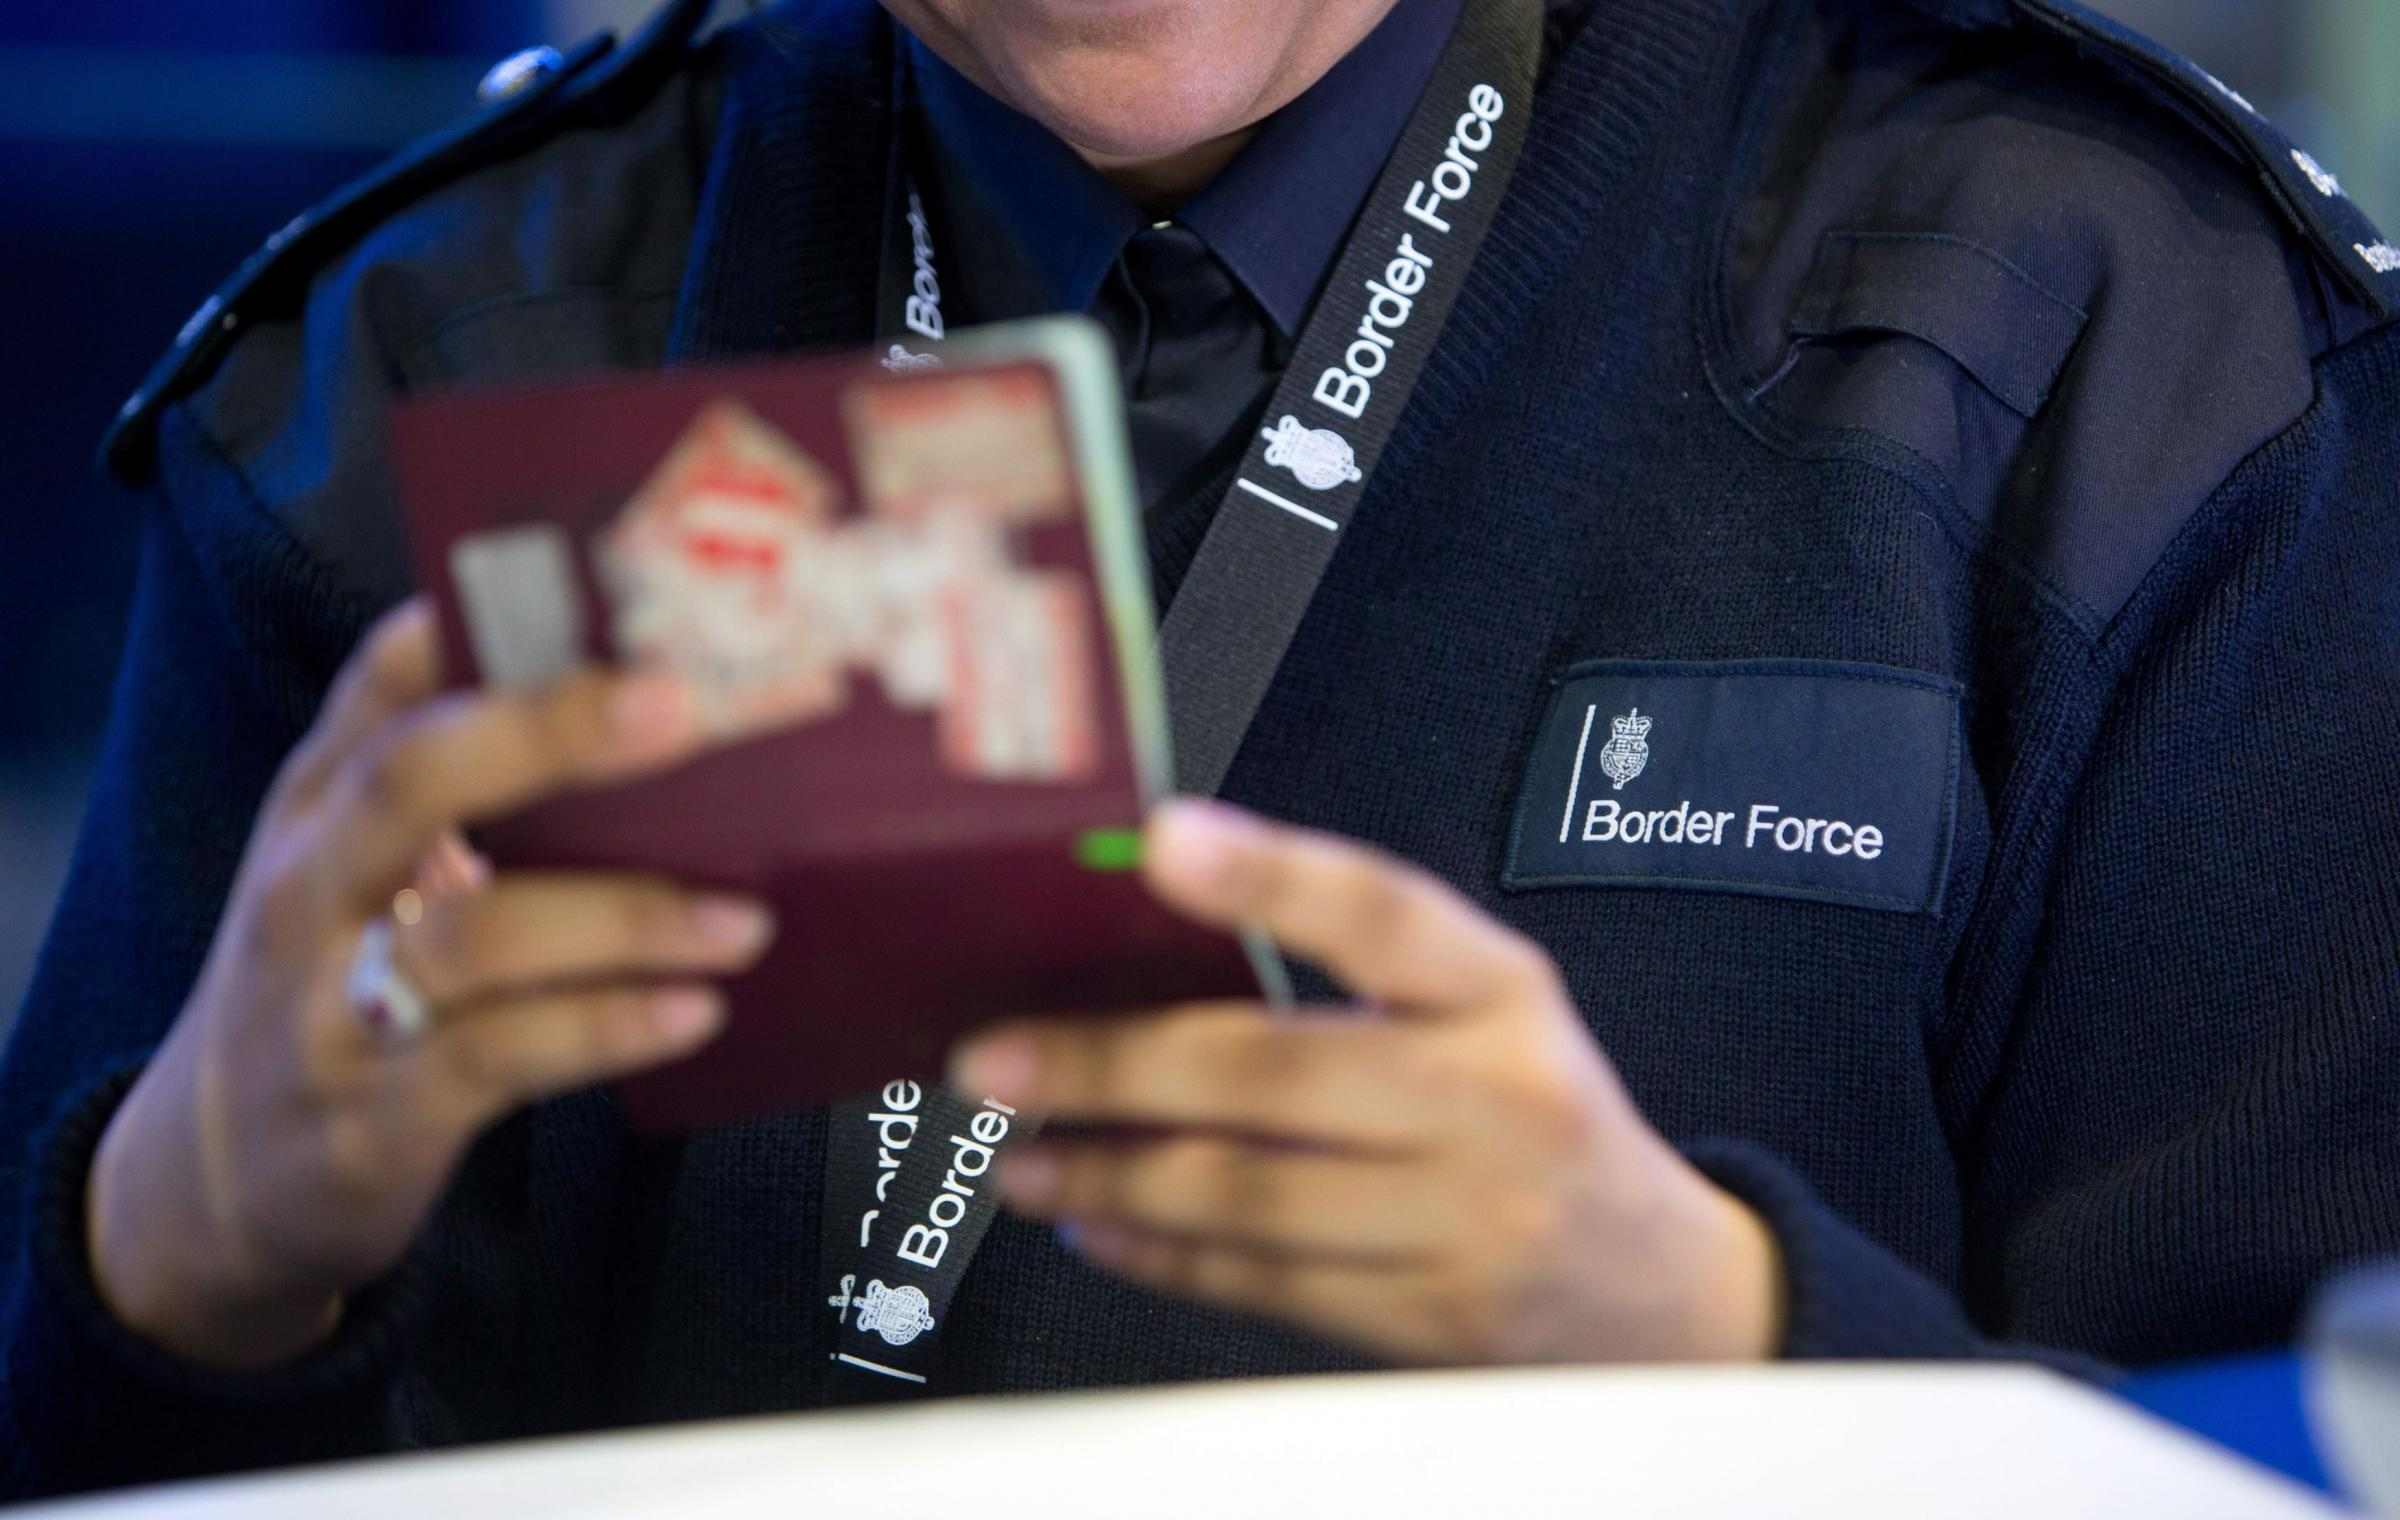 Brexit Britain: I watched my son-in-law being racially profiled twice in ten minutes by UK Border Force